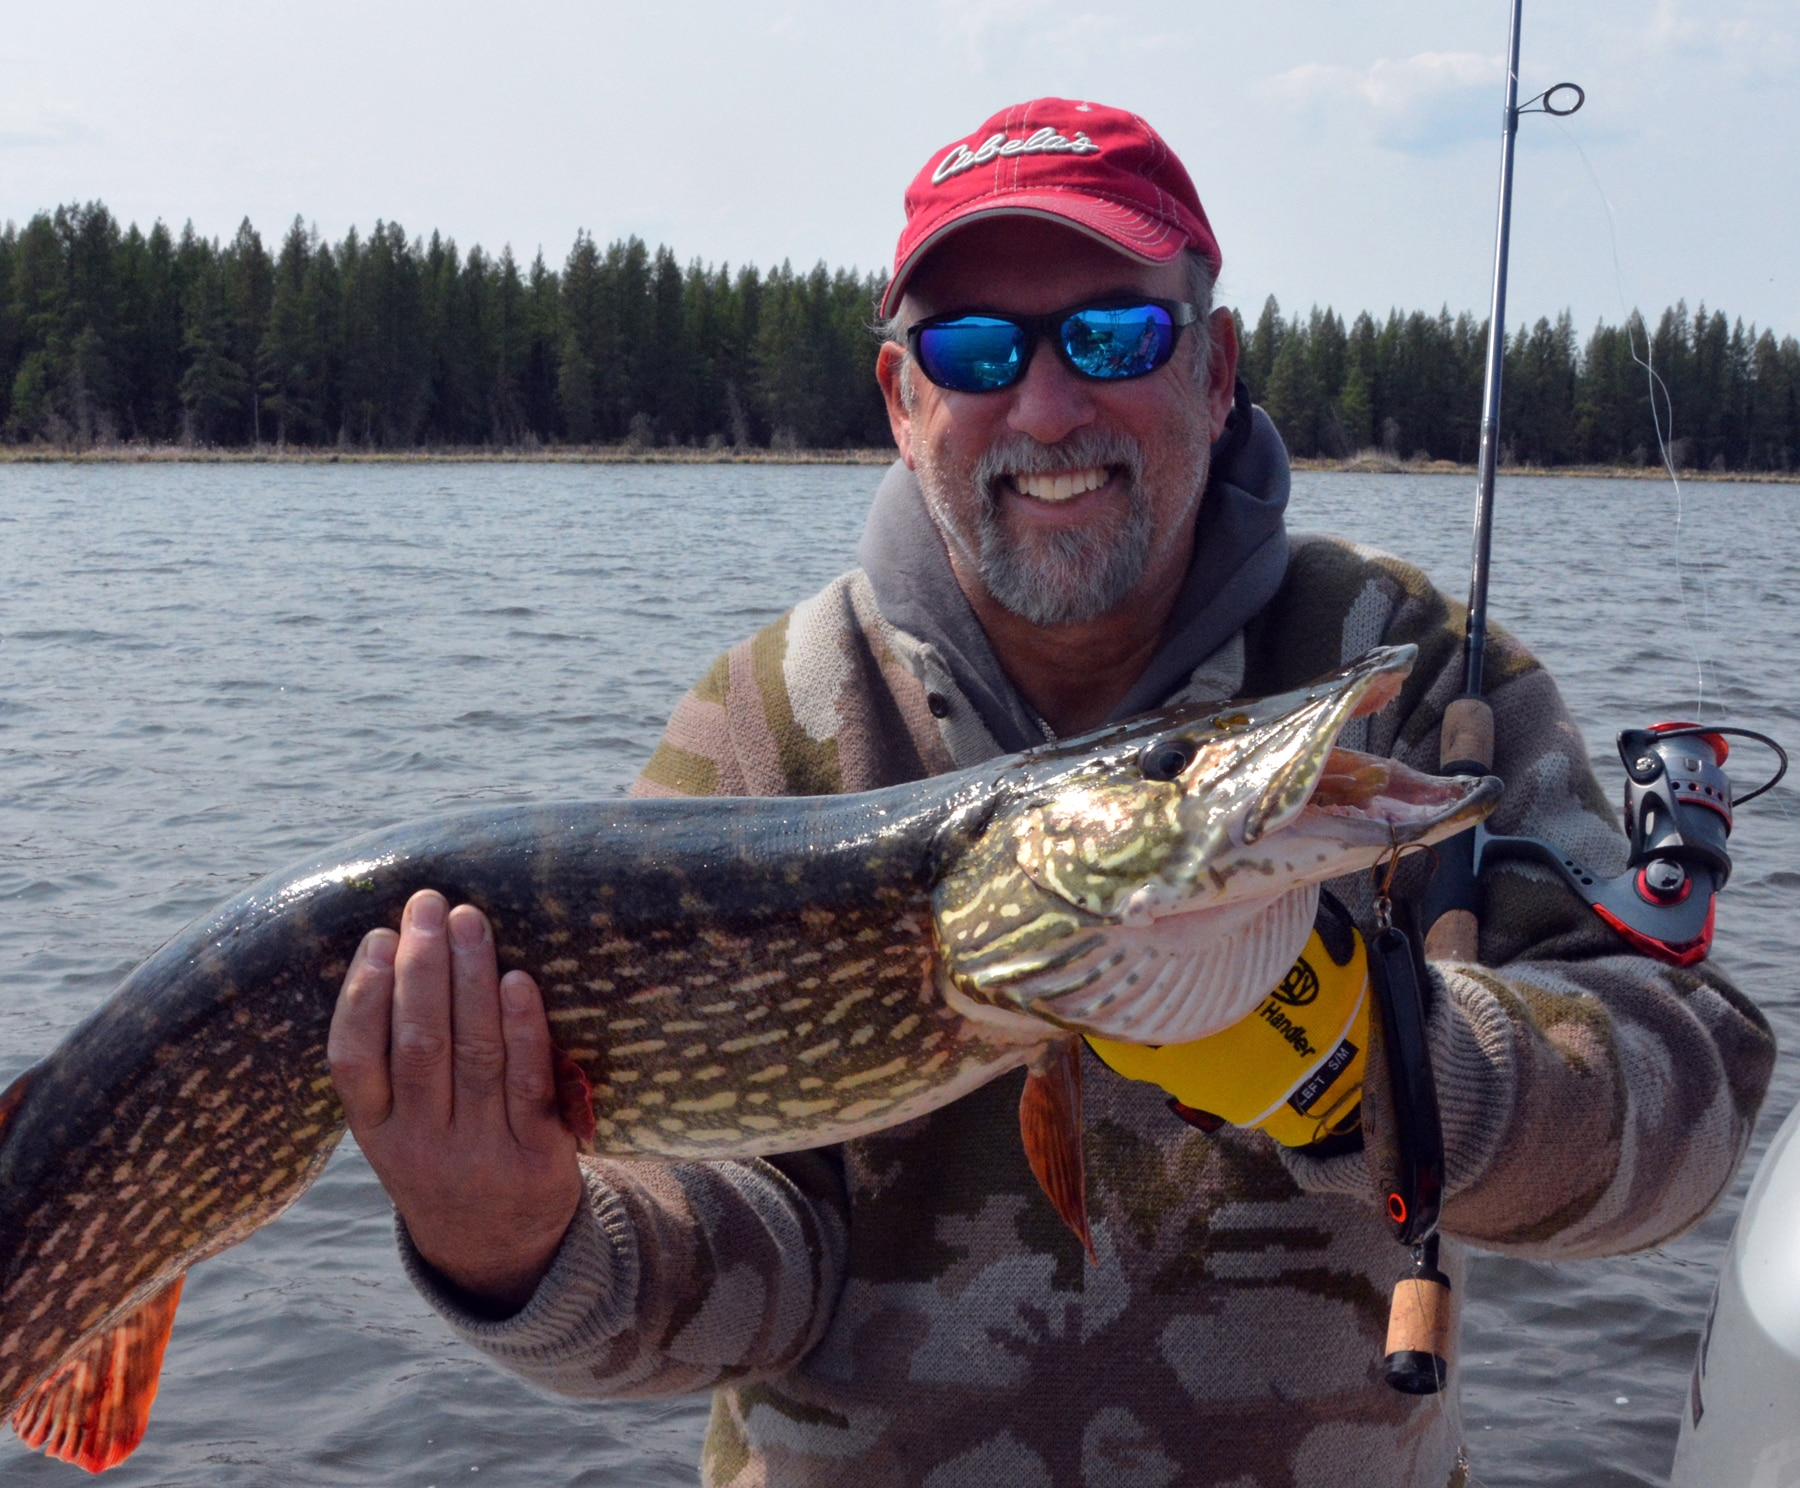 Ken with Cabela's rod and northern pike